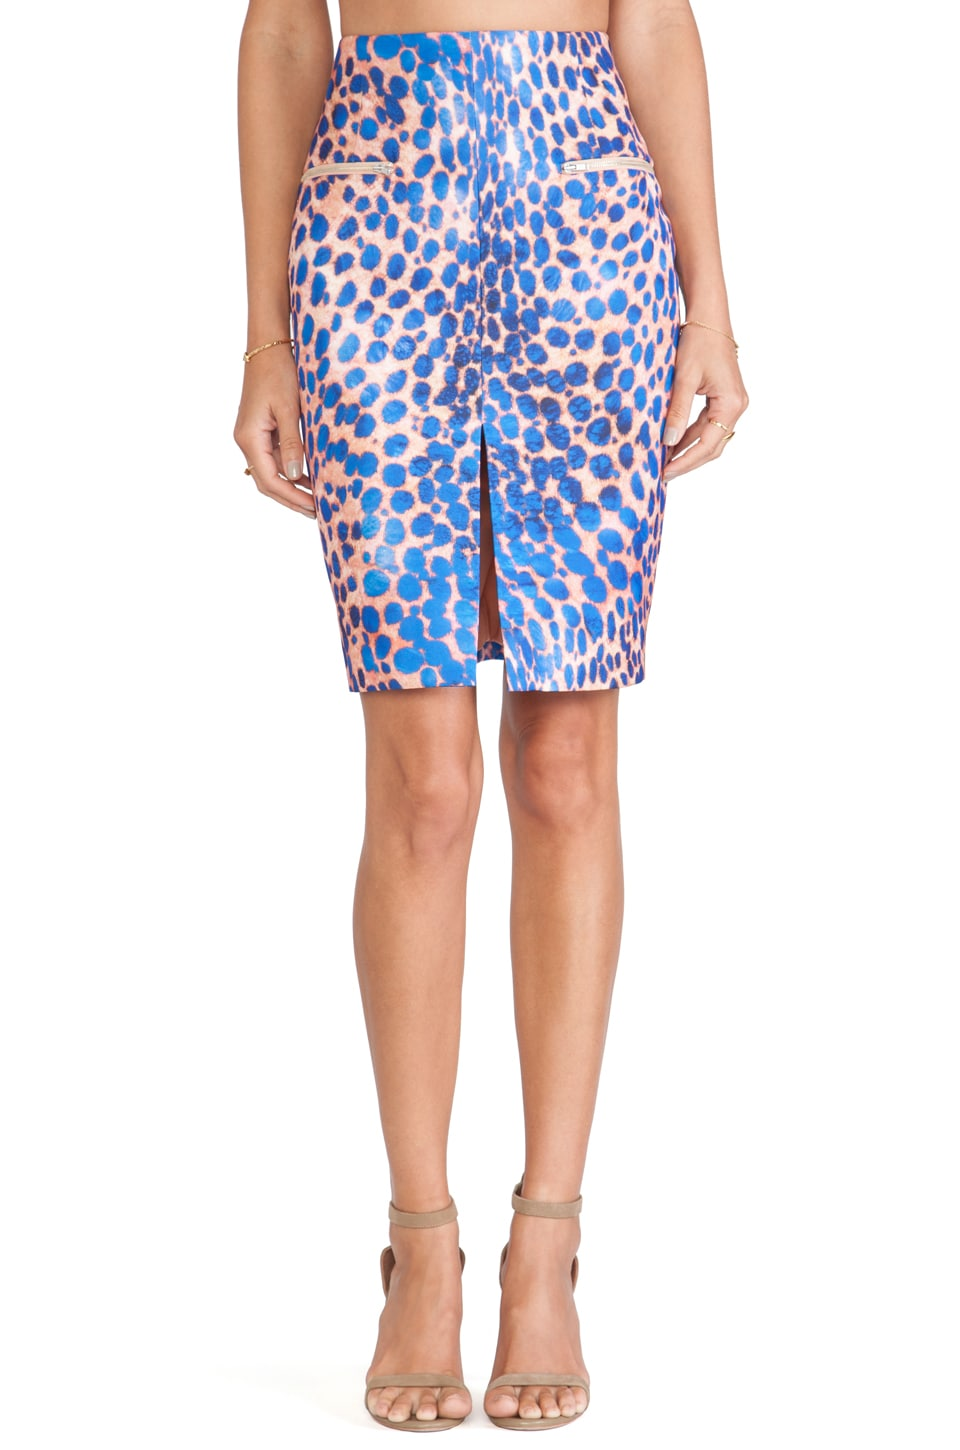 C/MEO The Recovery Skirt in Cobalt Leopard